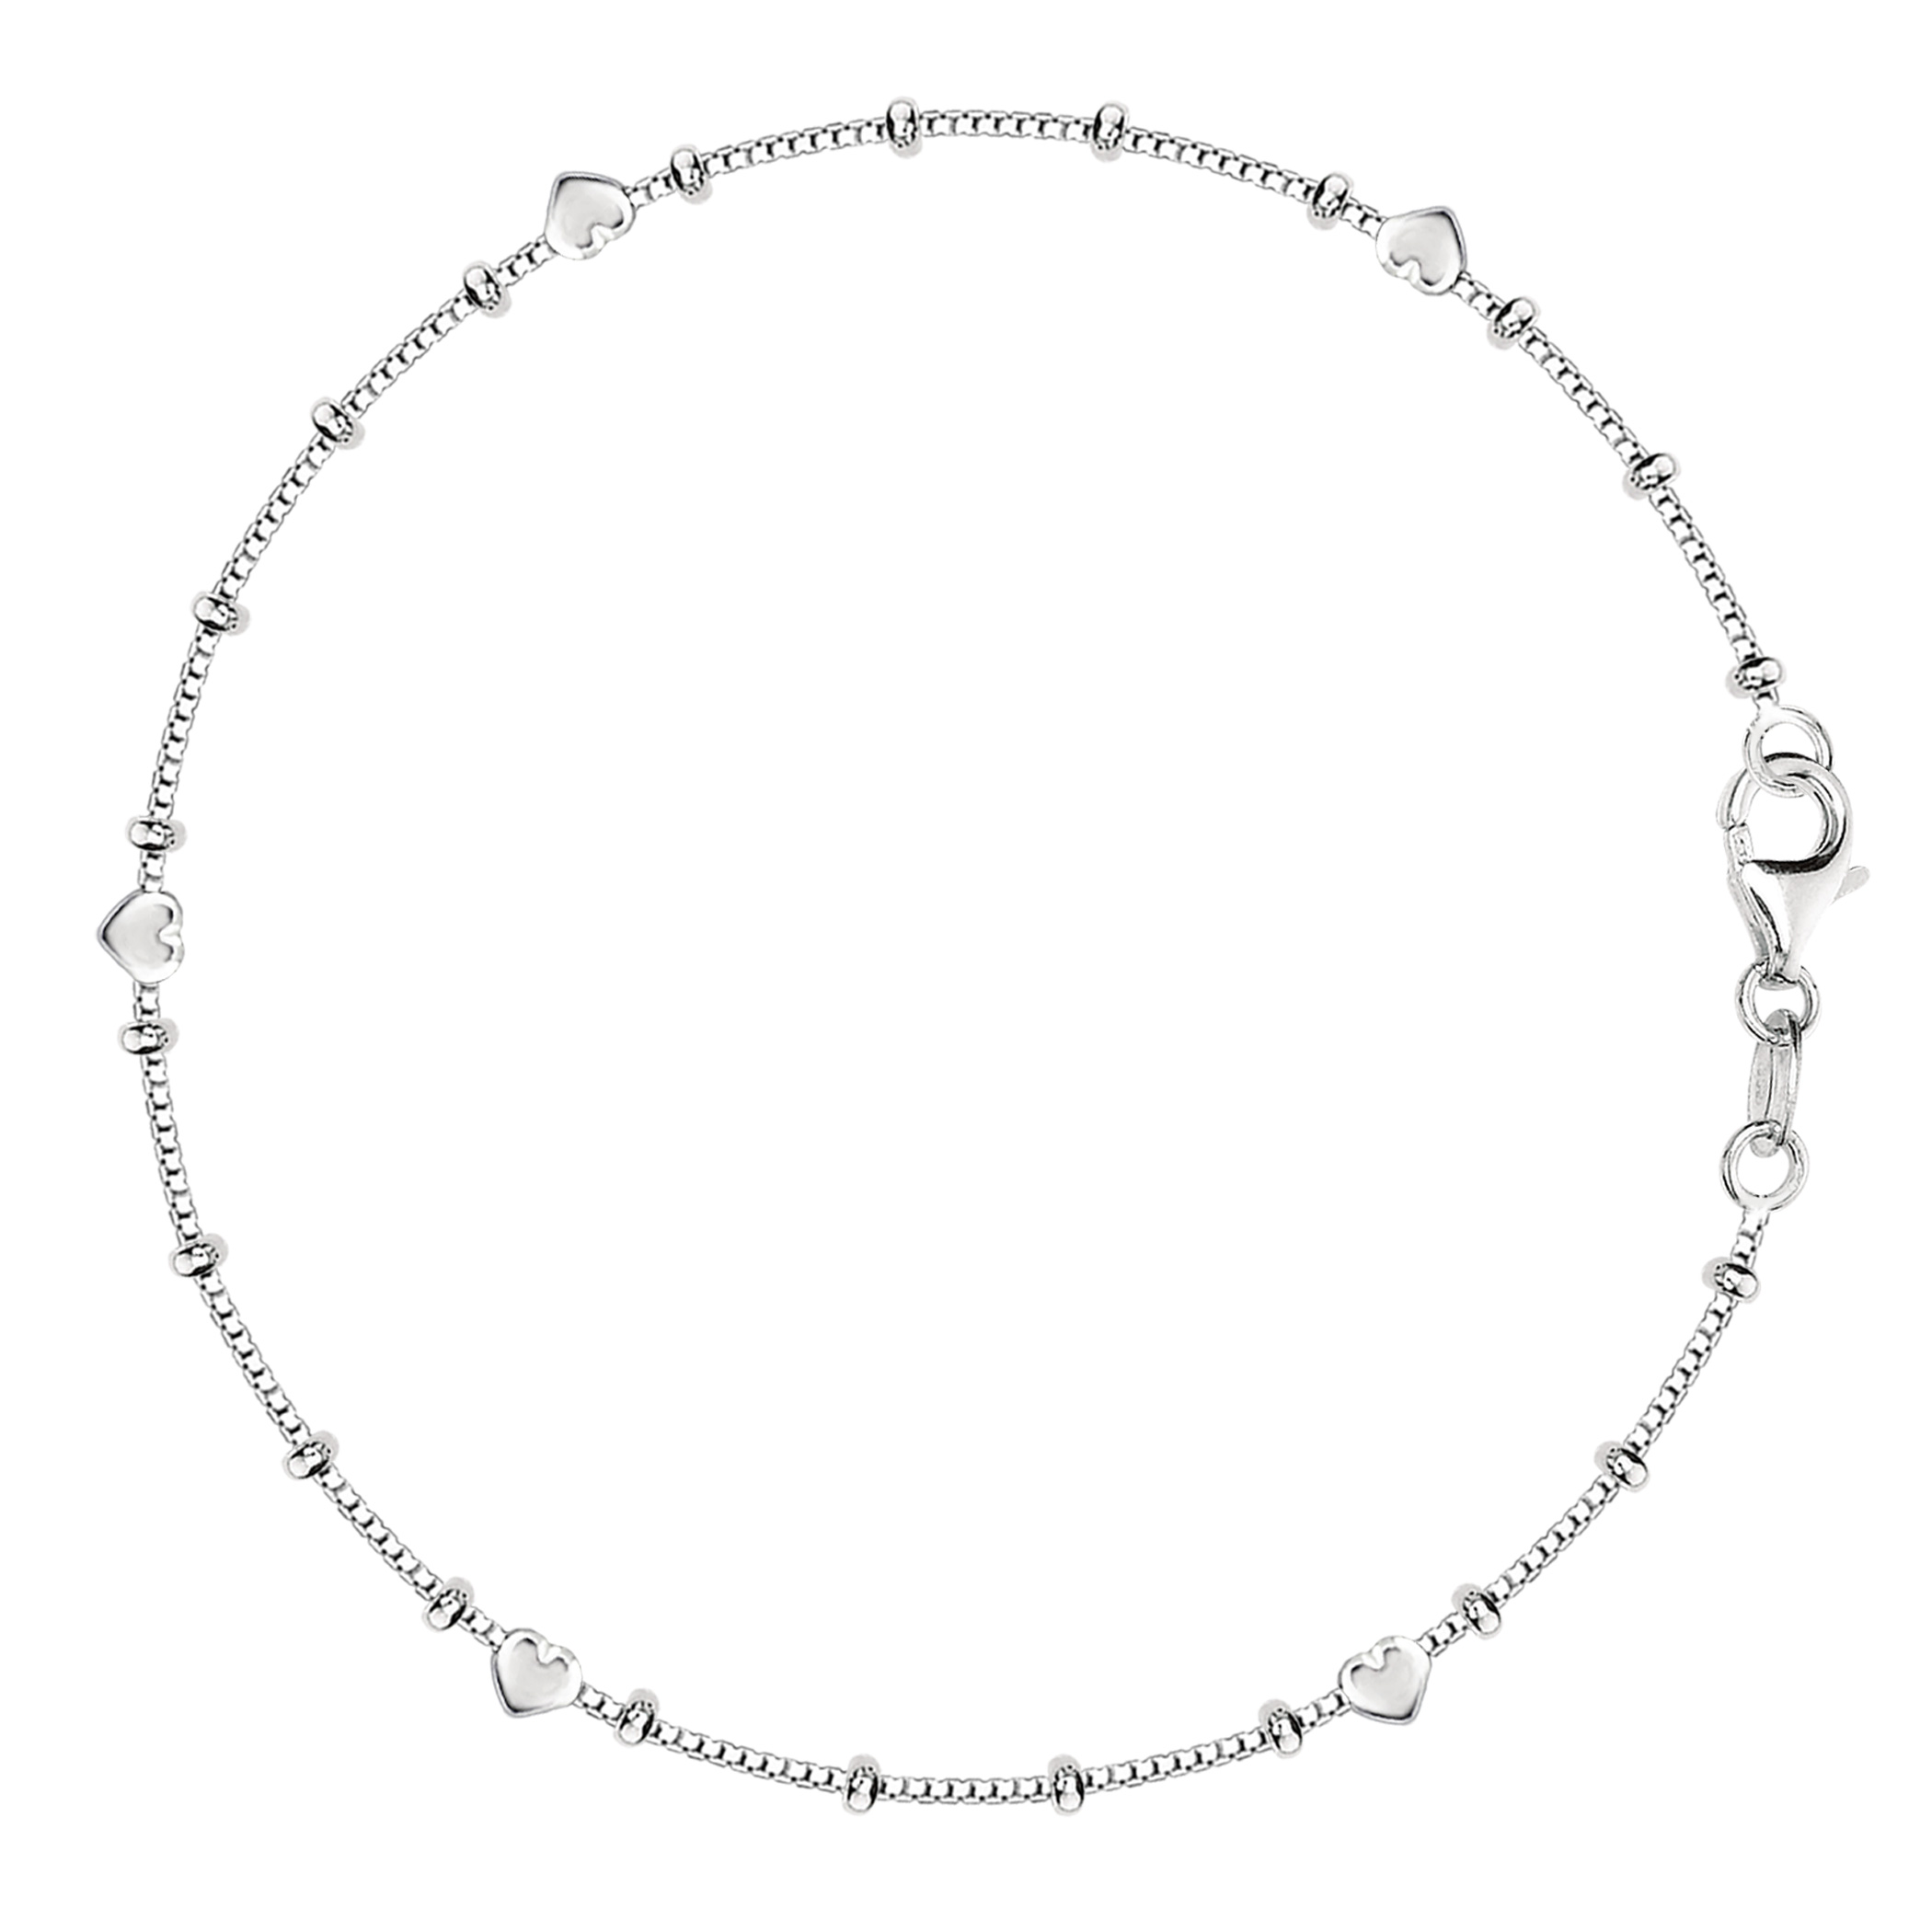 Box Chain With Heart Beads Anklet In Sterling Silver, 11″